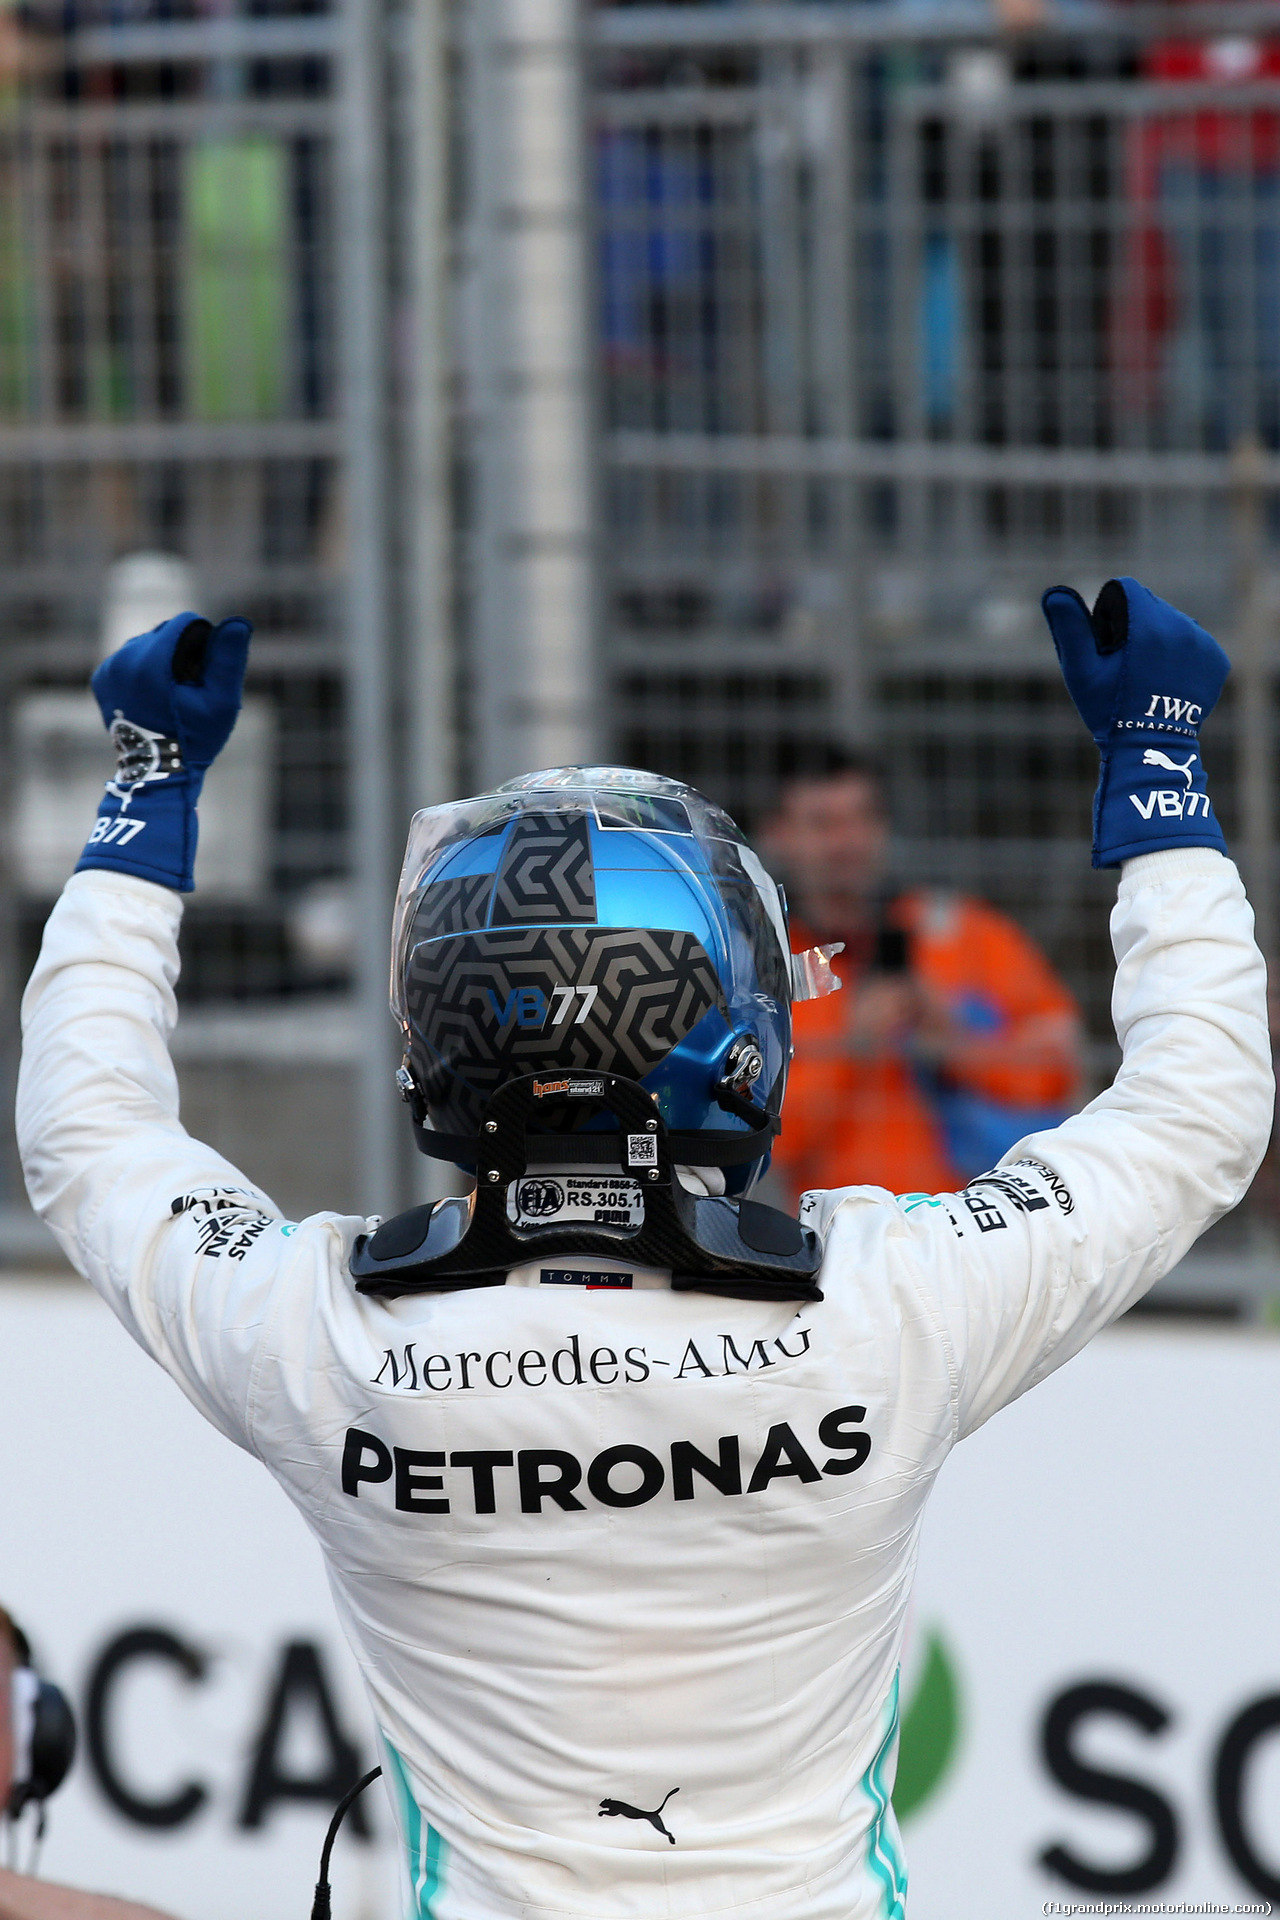 GP AZERBAIJAN, 27.04.2019 - Qualifiche, Valtteri Bottas (FIN) Mercedes AMG F1 W010 pole position